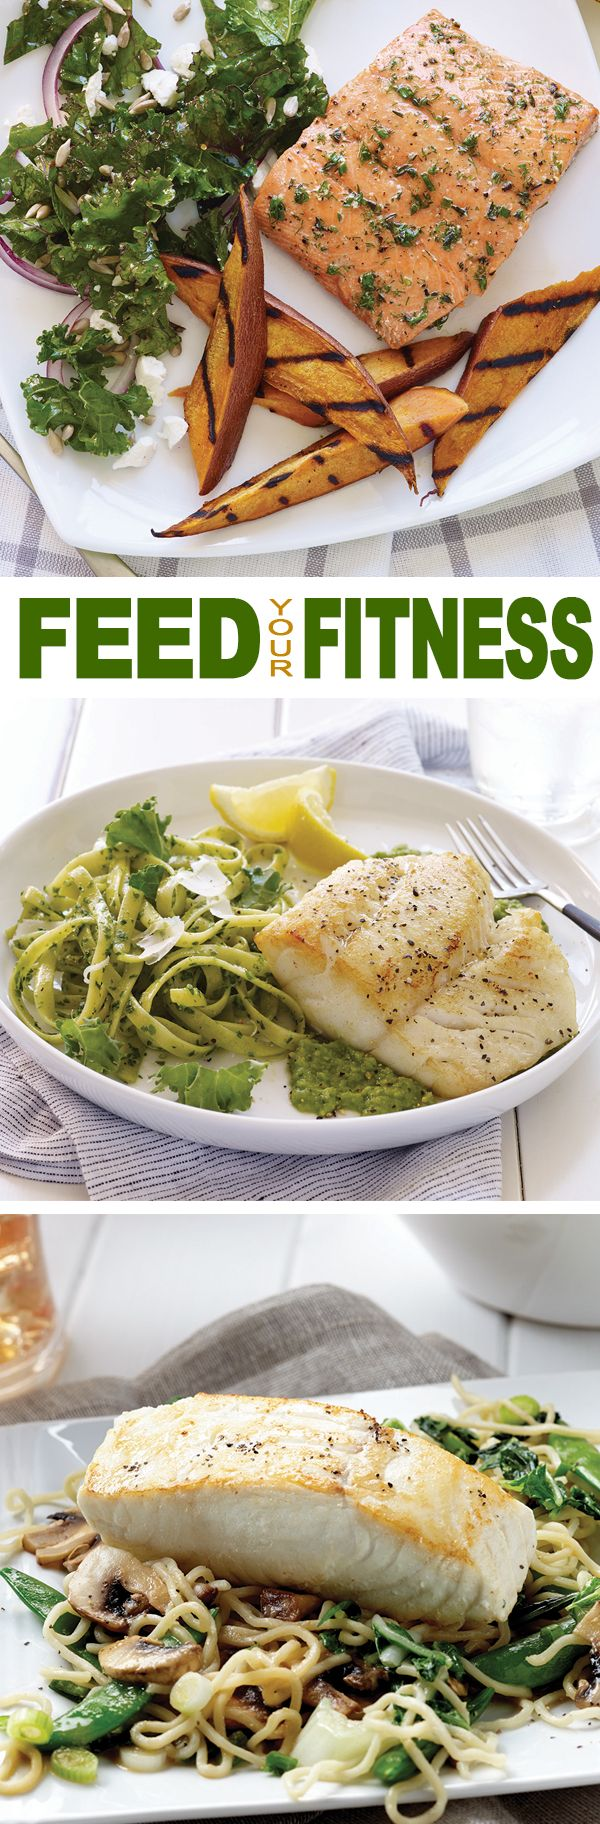 Whether you're a competitive athlete or getting back in shape, you can FEED YOUR FITNESS with Alaska seafood.